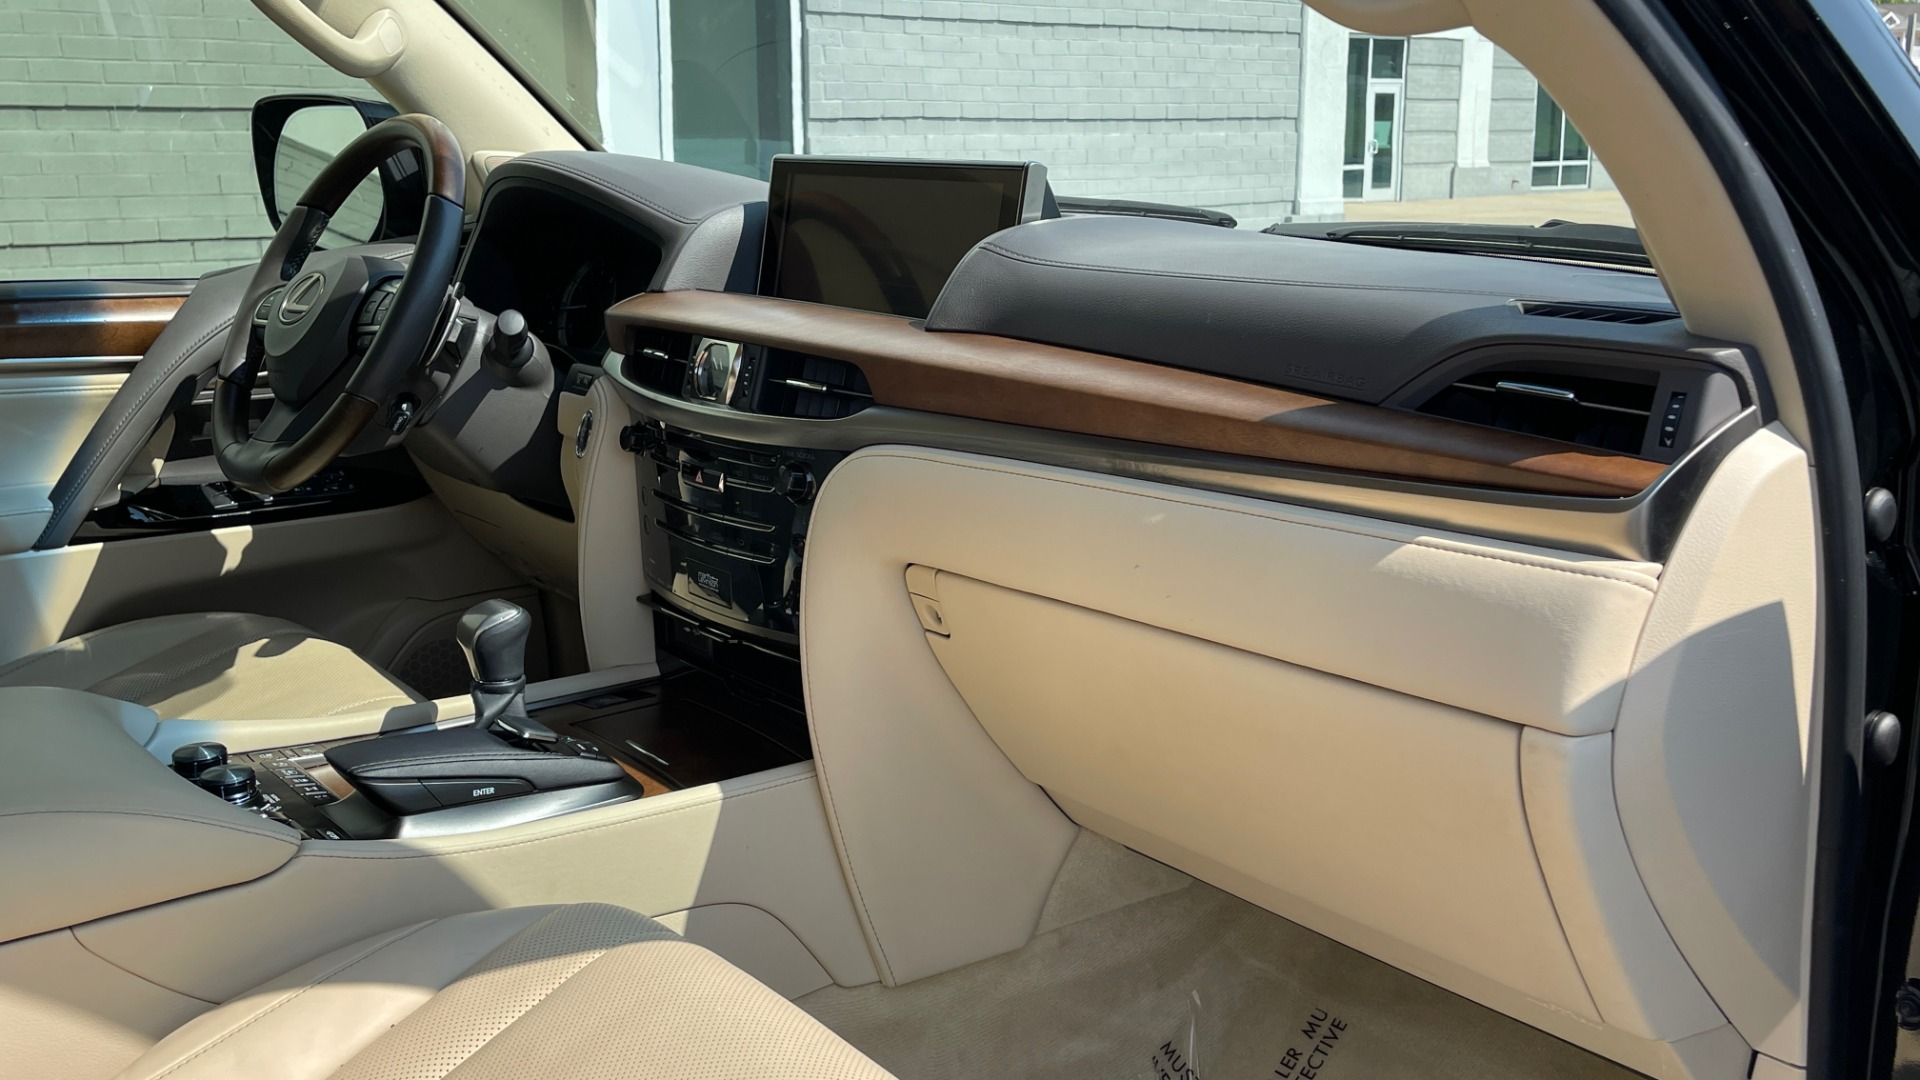 Used 2017 Lexus LX 570 LUXURY / 5.7L V8 / NAV / SUNROOF / 3-ROW / DVD / REARVIEW for sale $63,995 at Formula Imports in Charlotte NC 28227 73